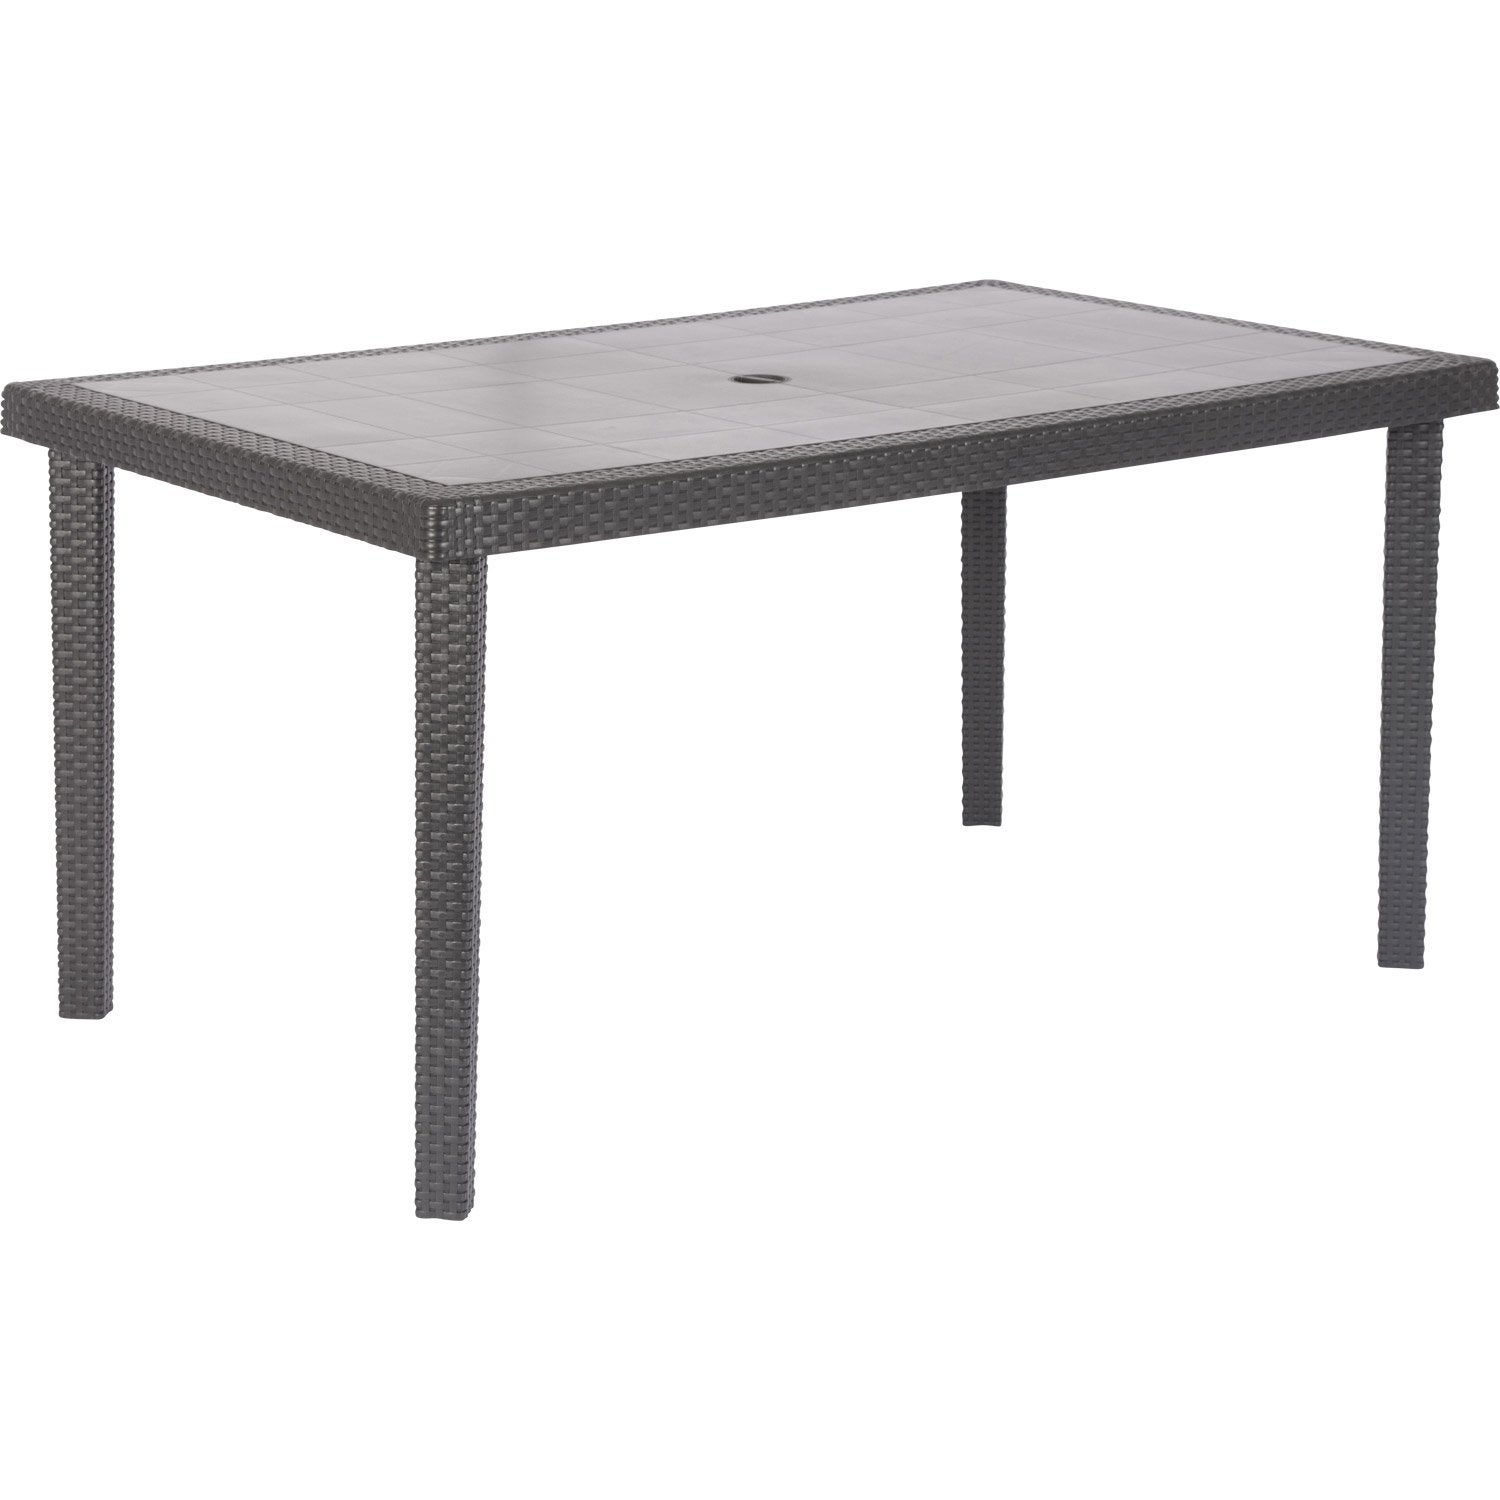 Table de jardin boh me rectangulaire anthracite 6 personnes leroy merlin - Table de cuisson leroy merlin ...